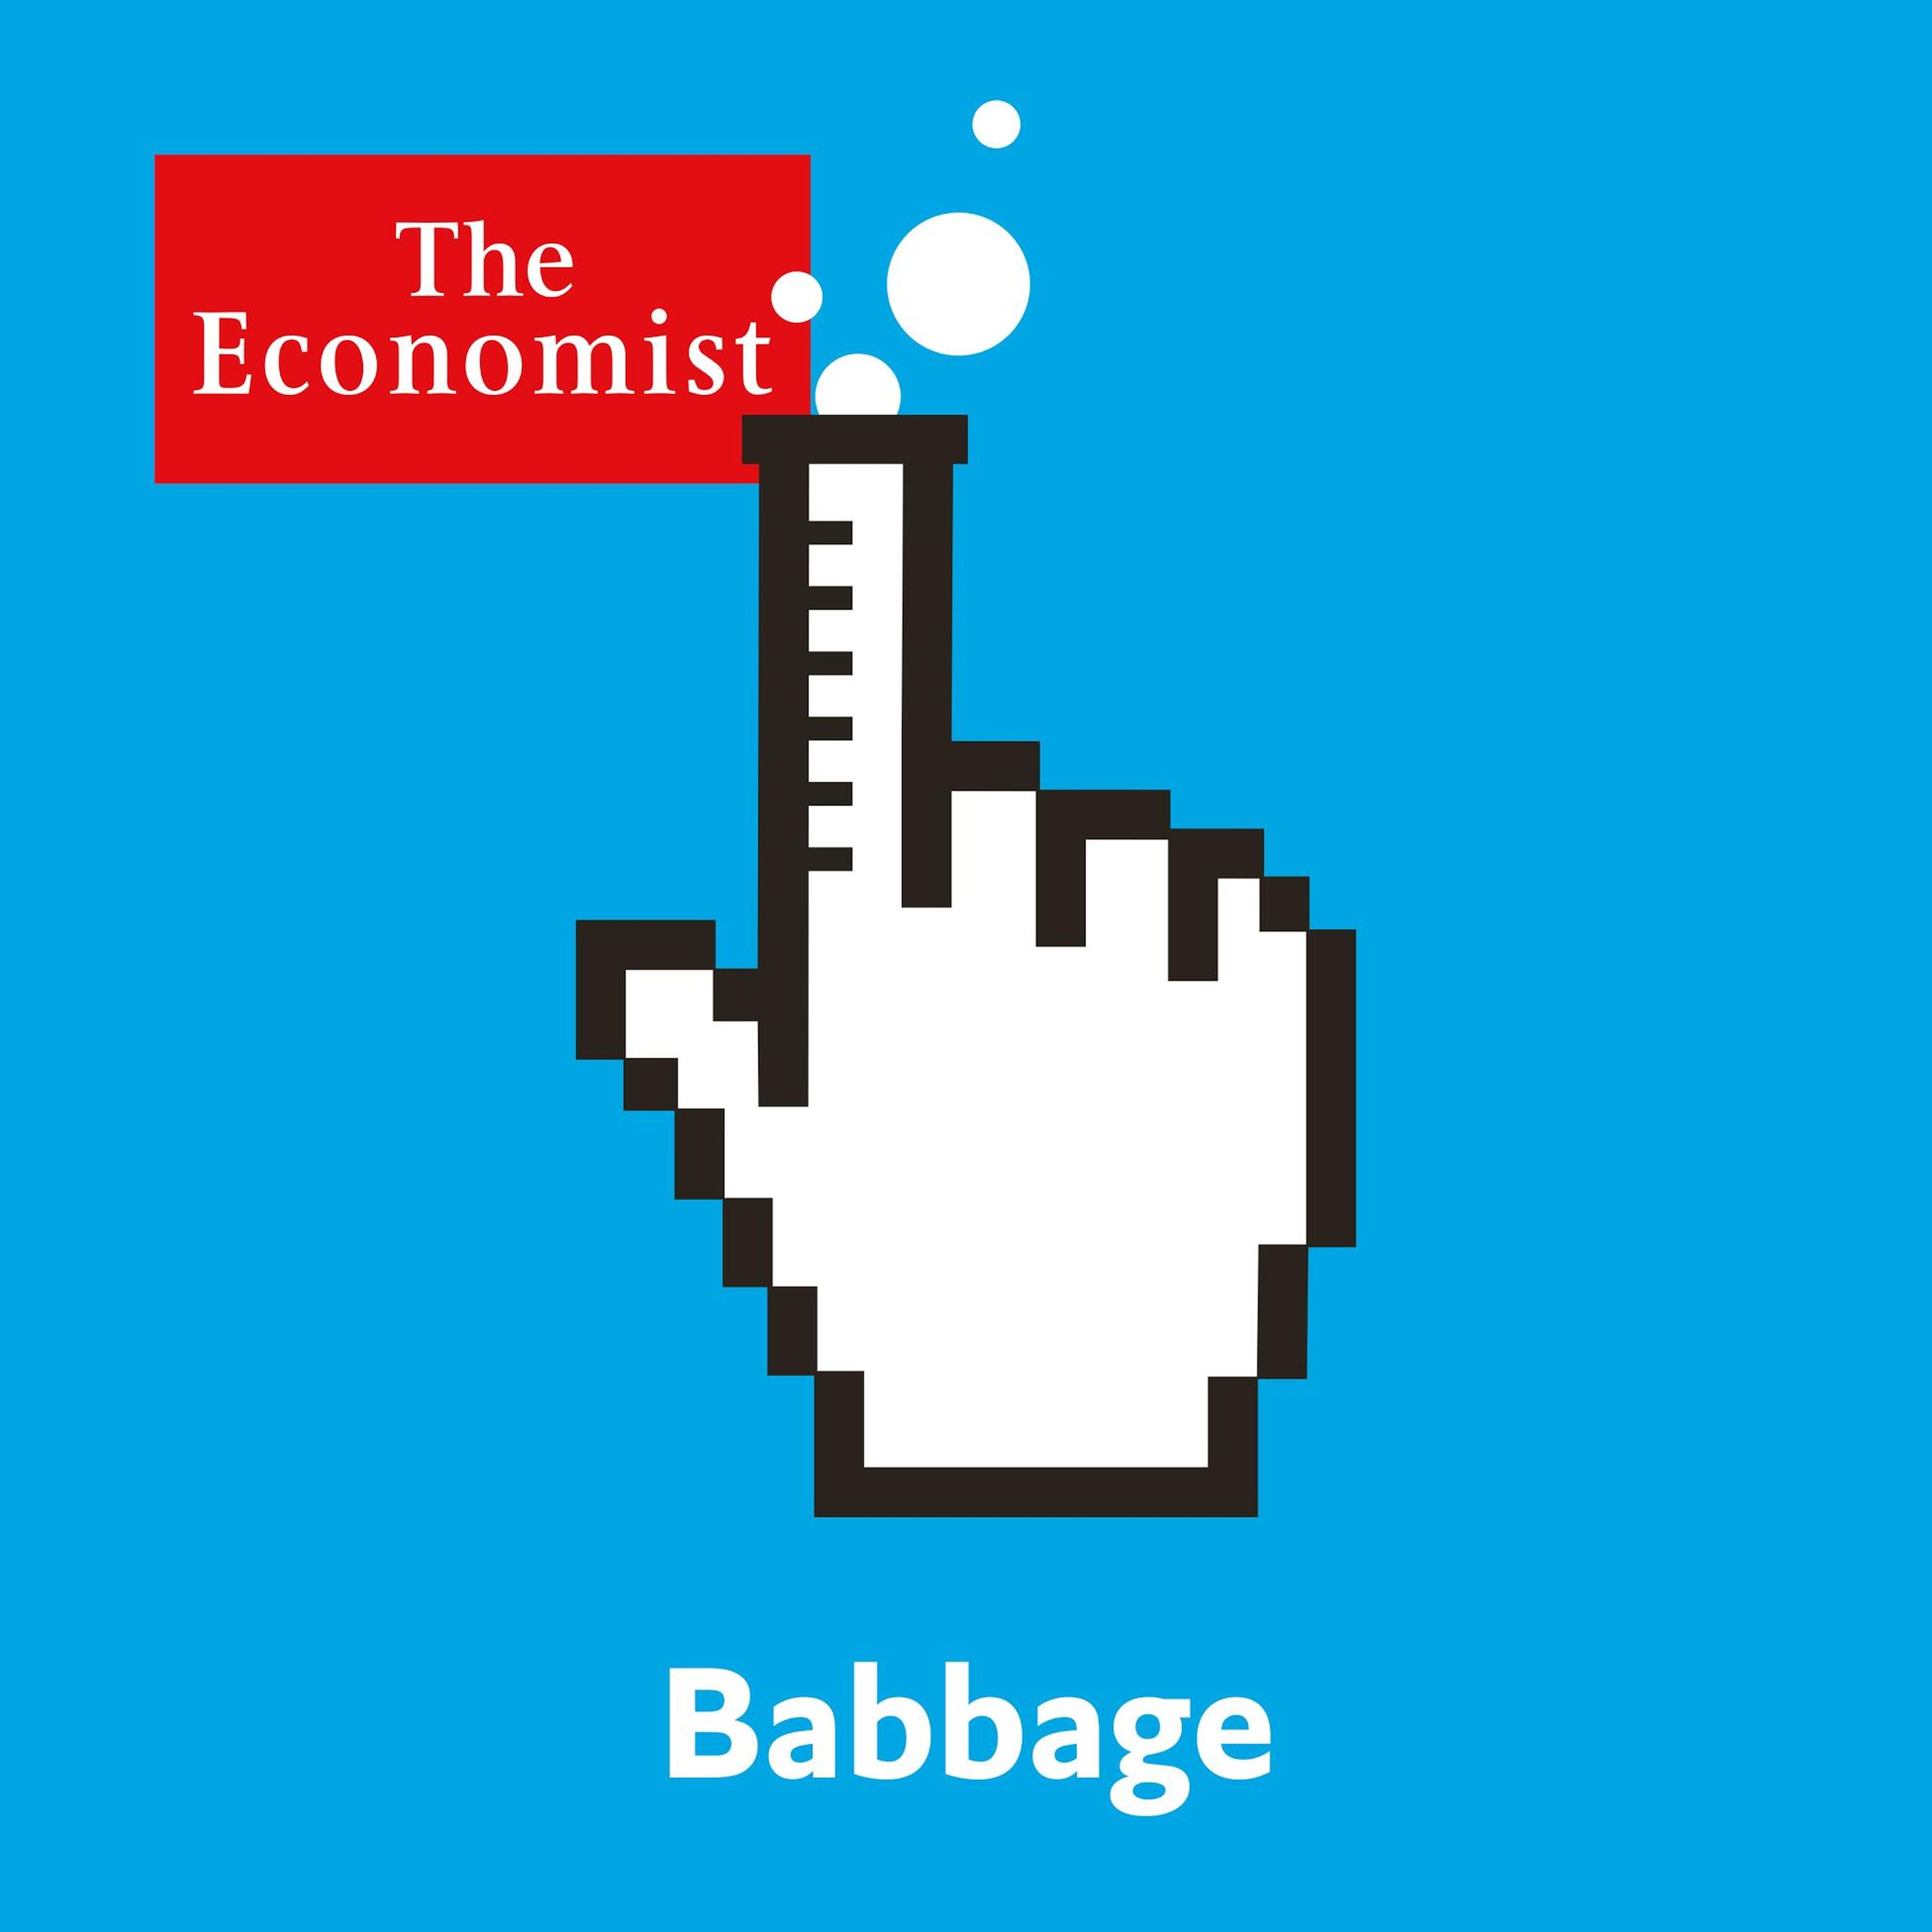 Babbage: The next giant leap for mankind